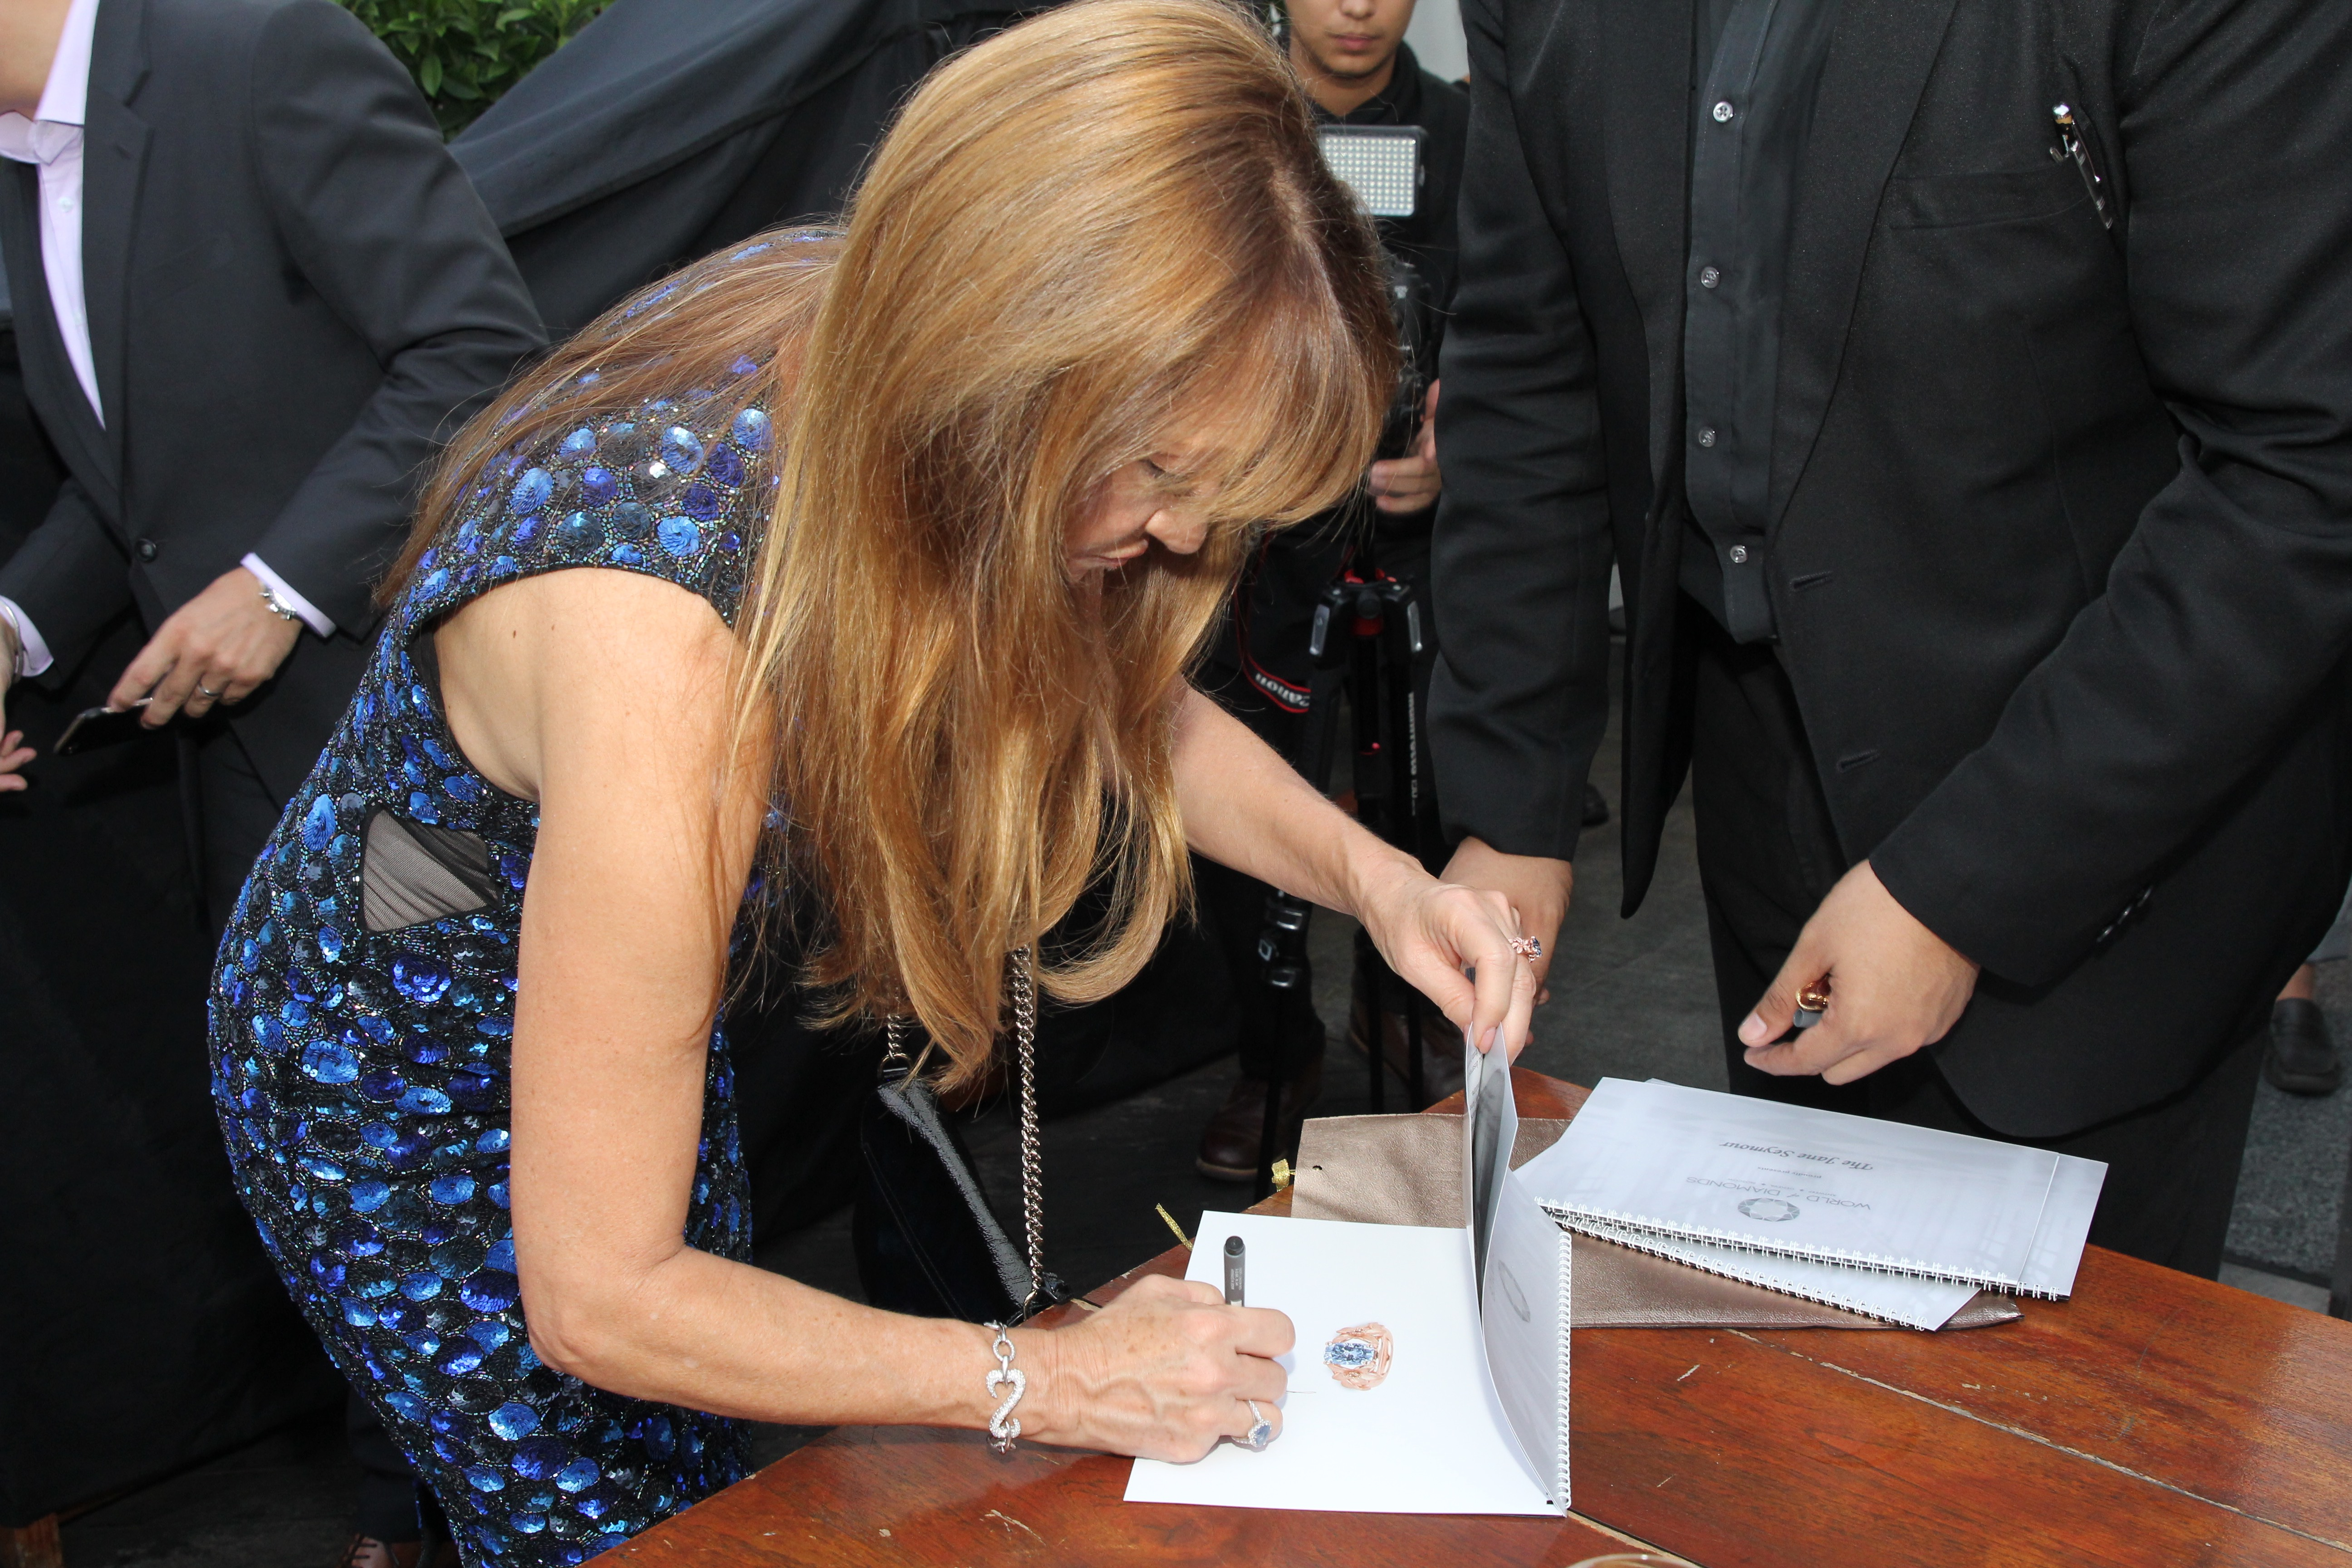 Jane Seymour endorsing the catalogue – The Jane Seymour